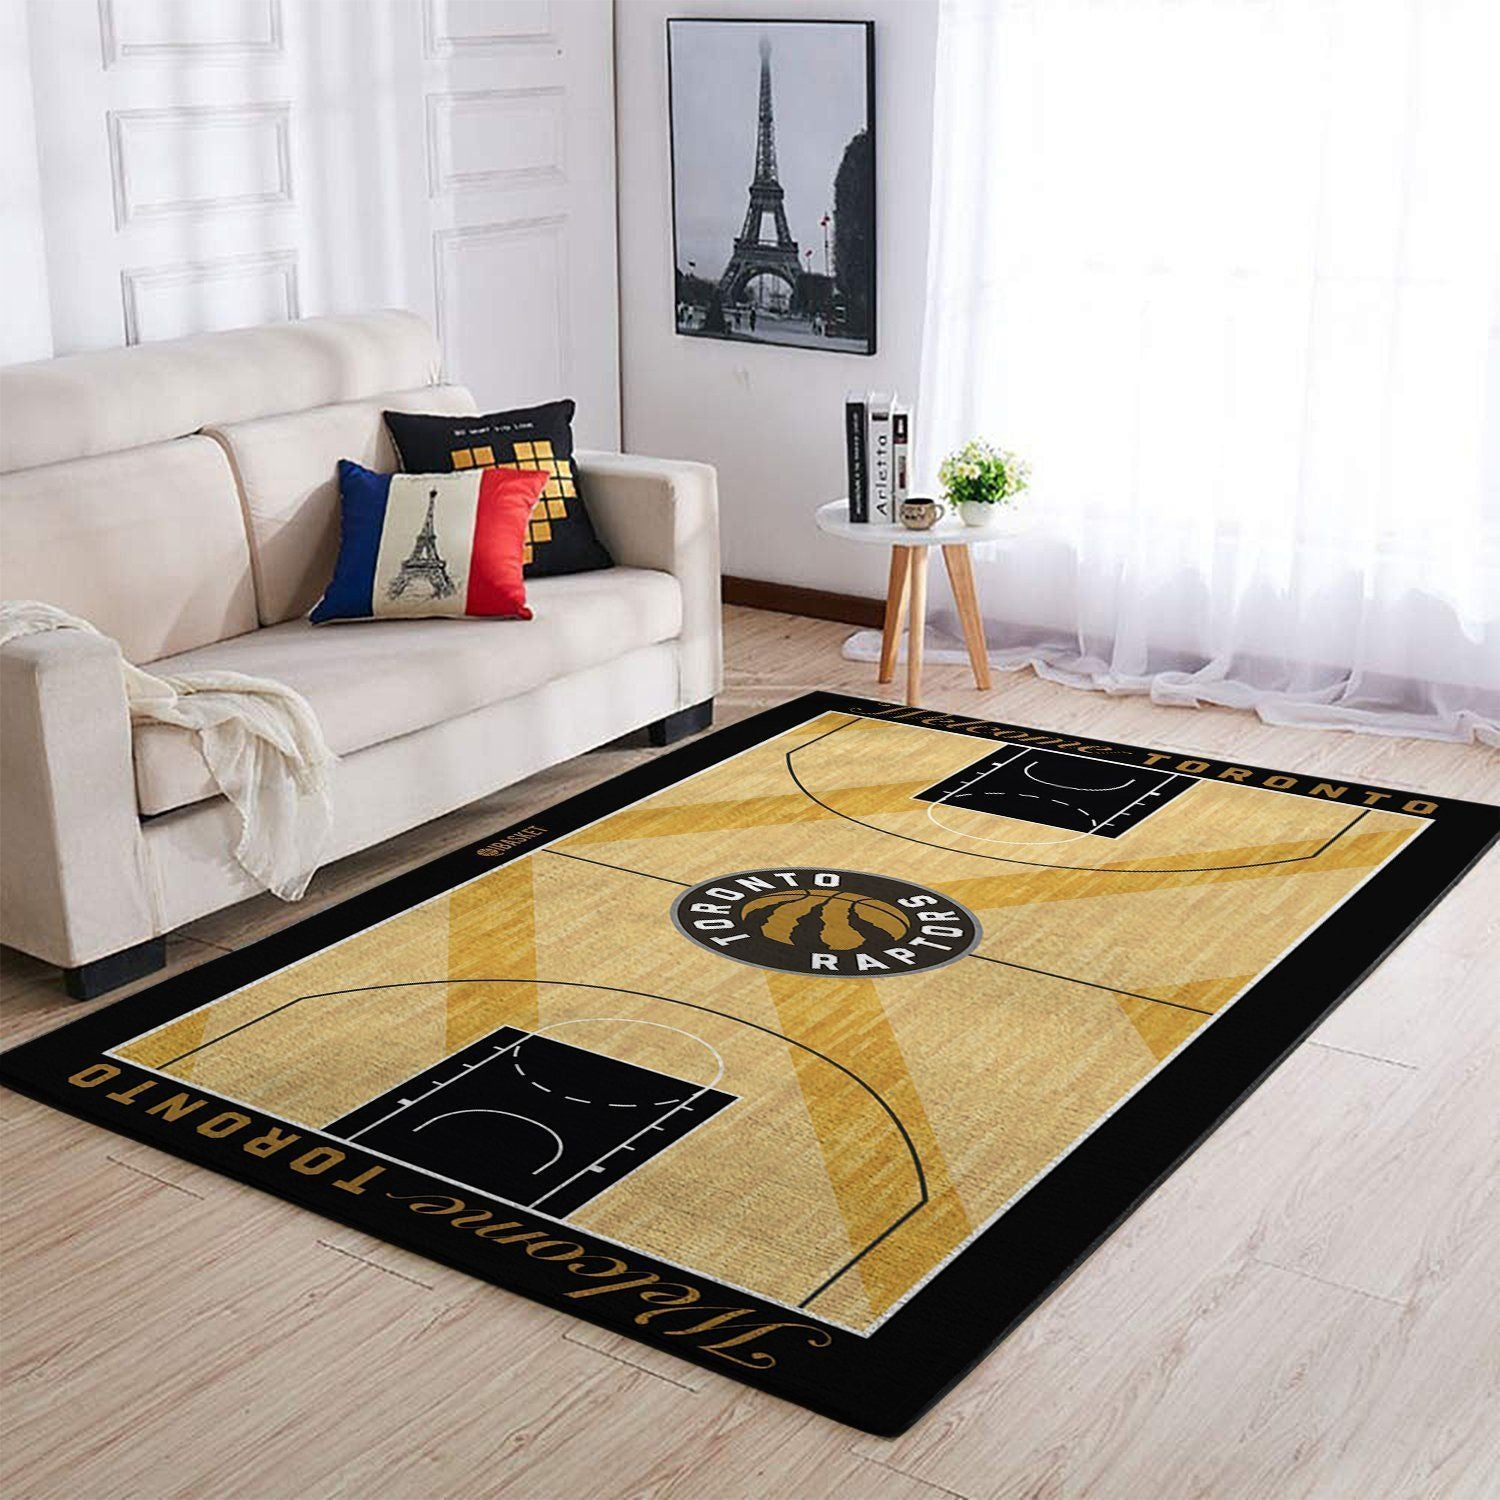 Toronto Raptors Area Rug, NBA Basketball Team Logo Carpet, Living Room Rugs Floor Decor 2003273